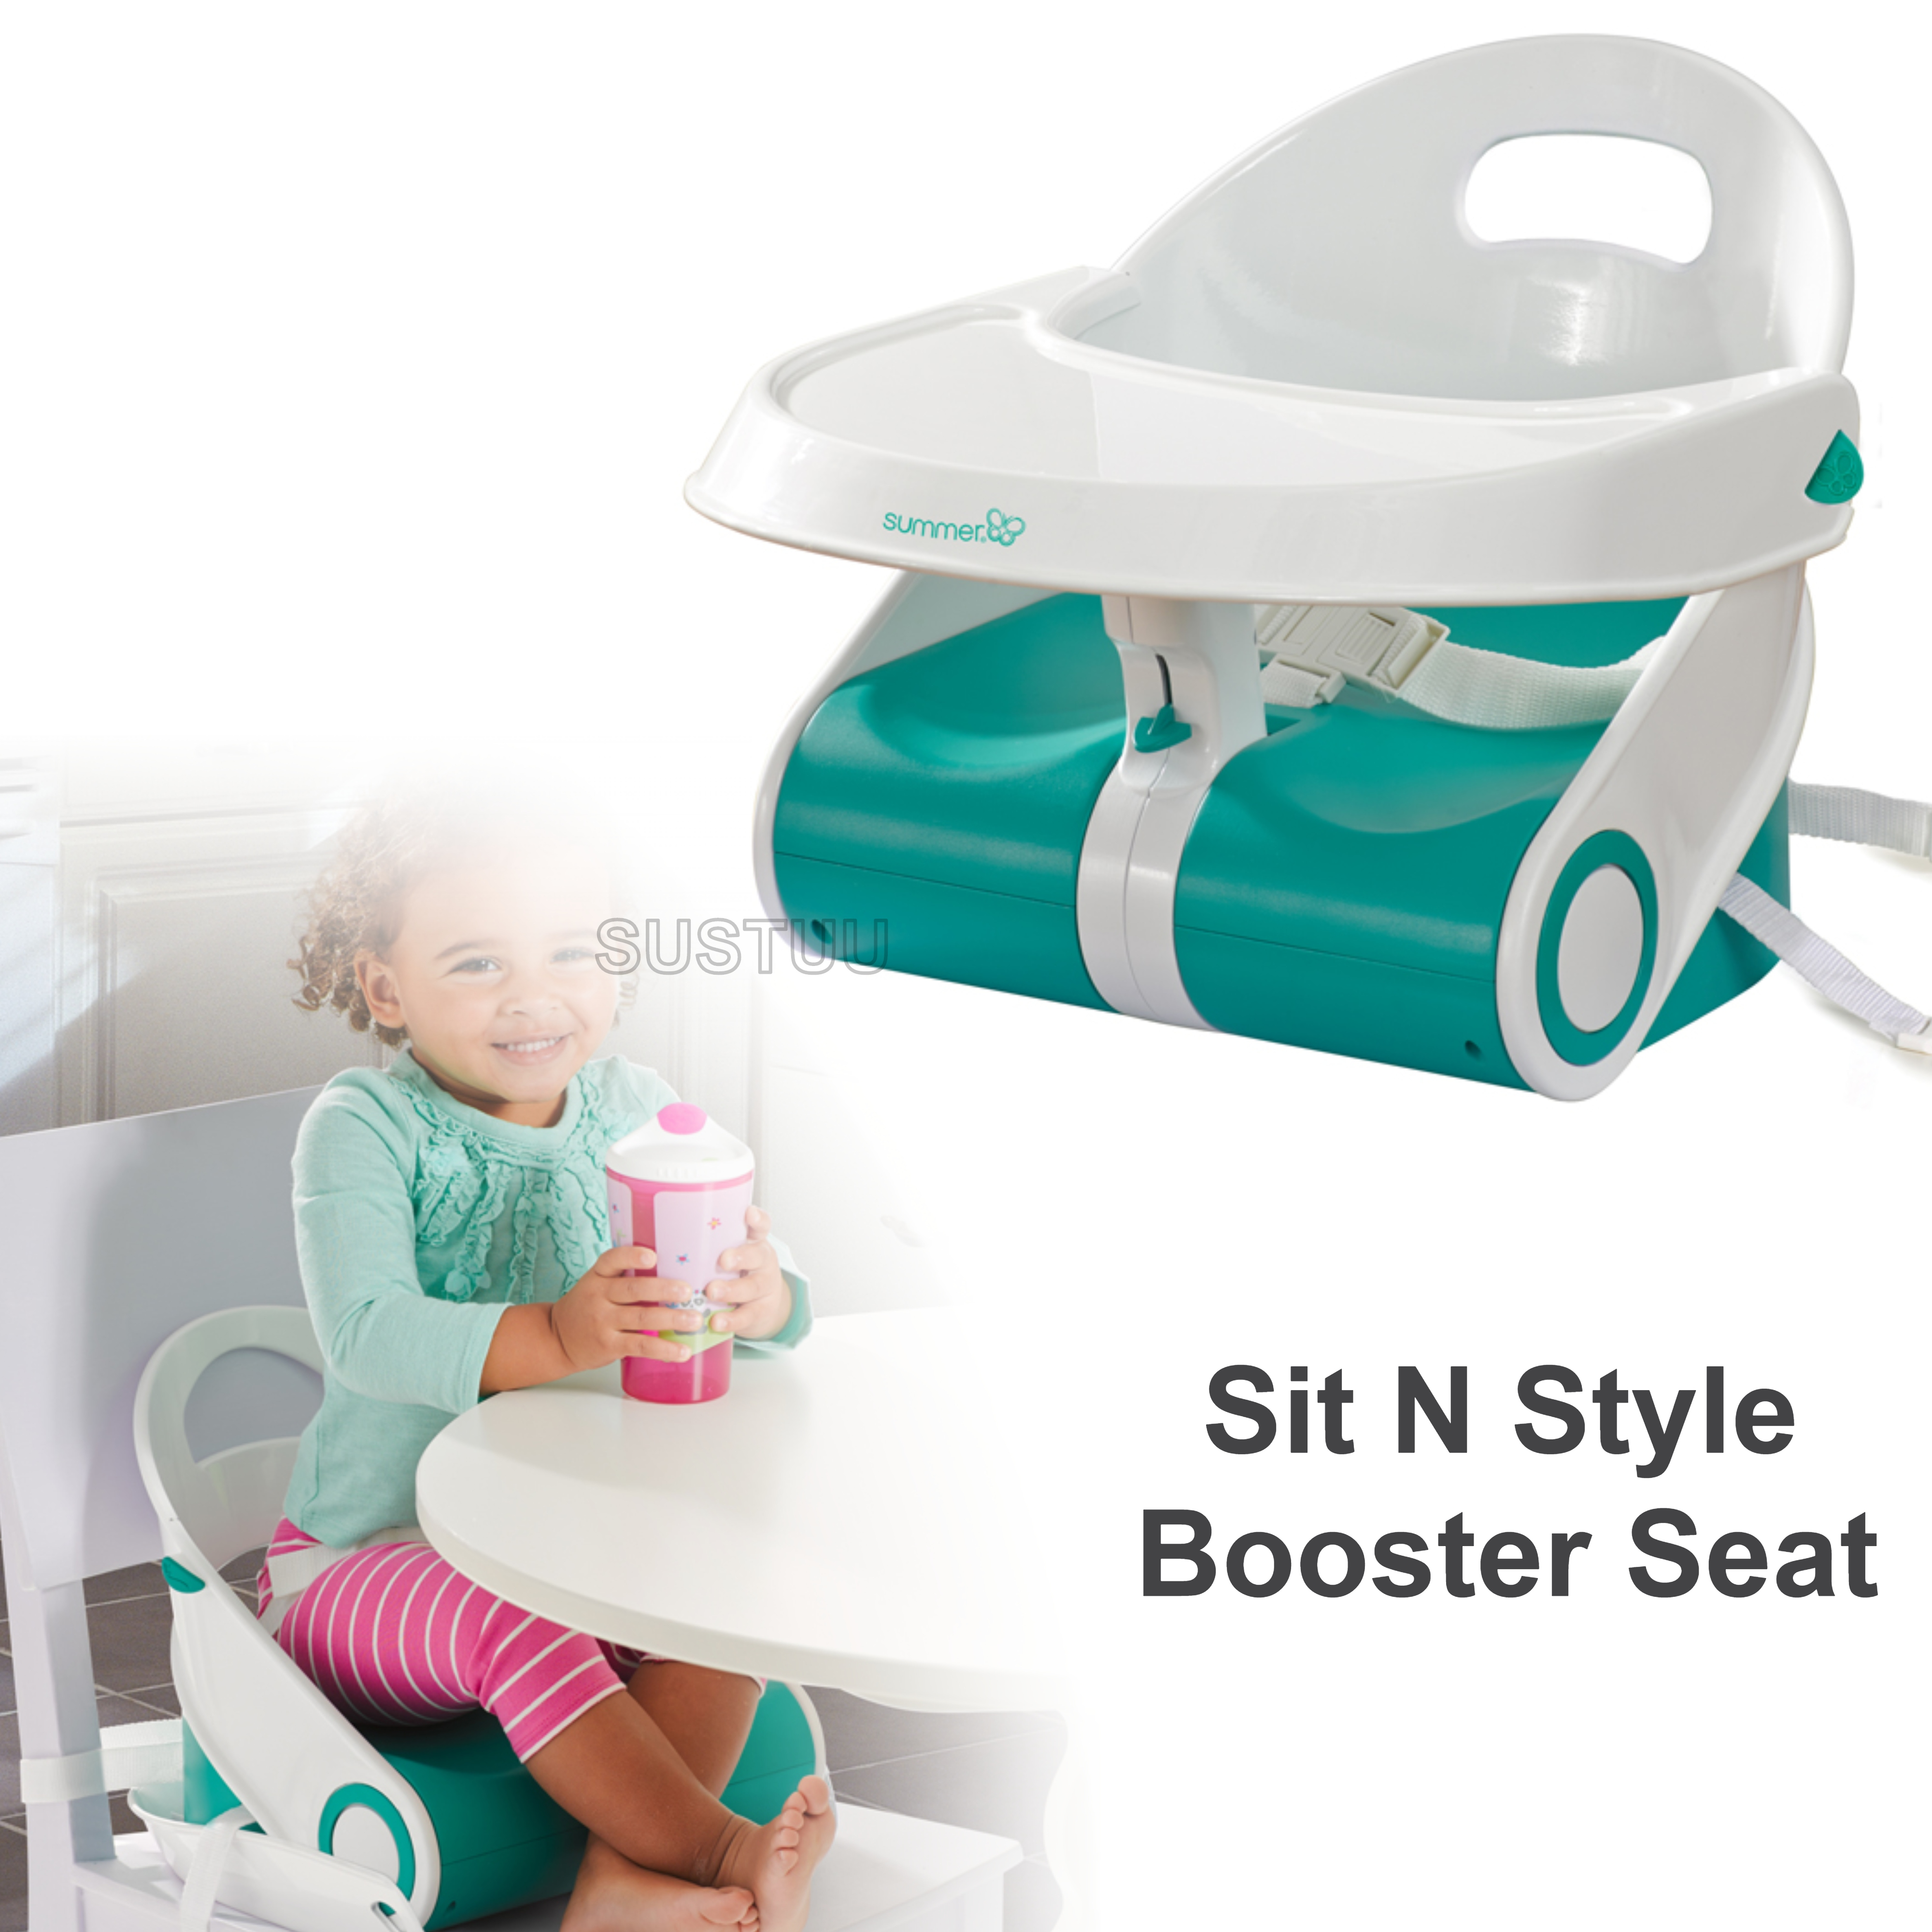 Summer Infant Sit N Style Booster Seat Teal/White | Indoor Outdoor Feeding | +6months